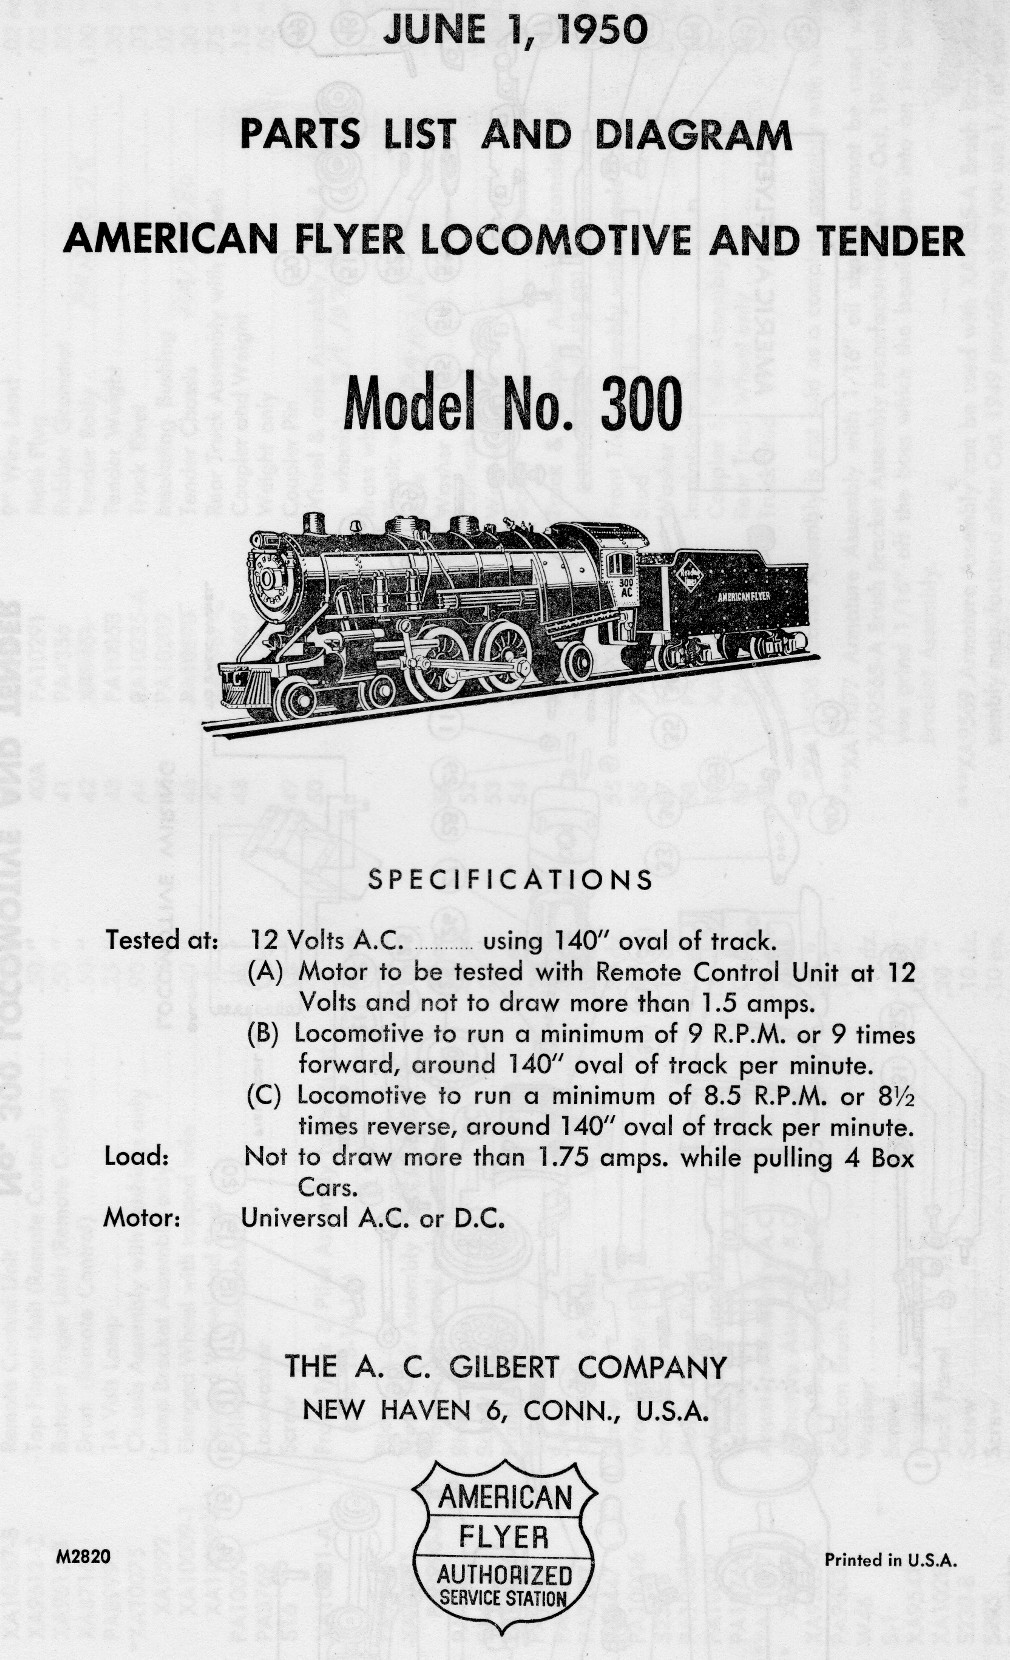 American Flyer Transformer 300 Parts List and Diagram - Page 1